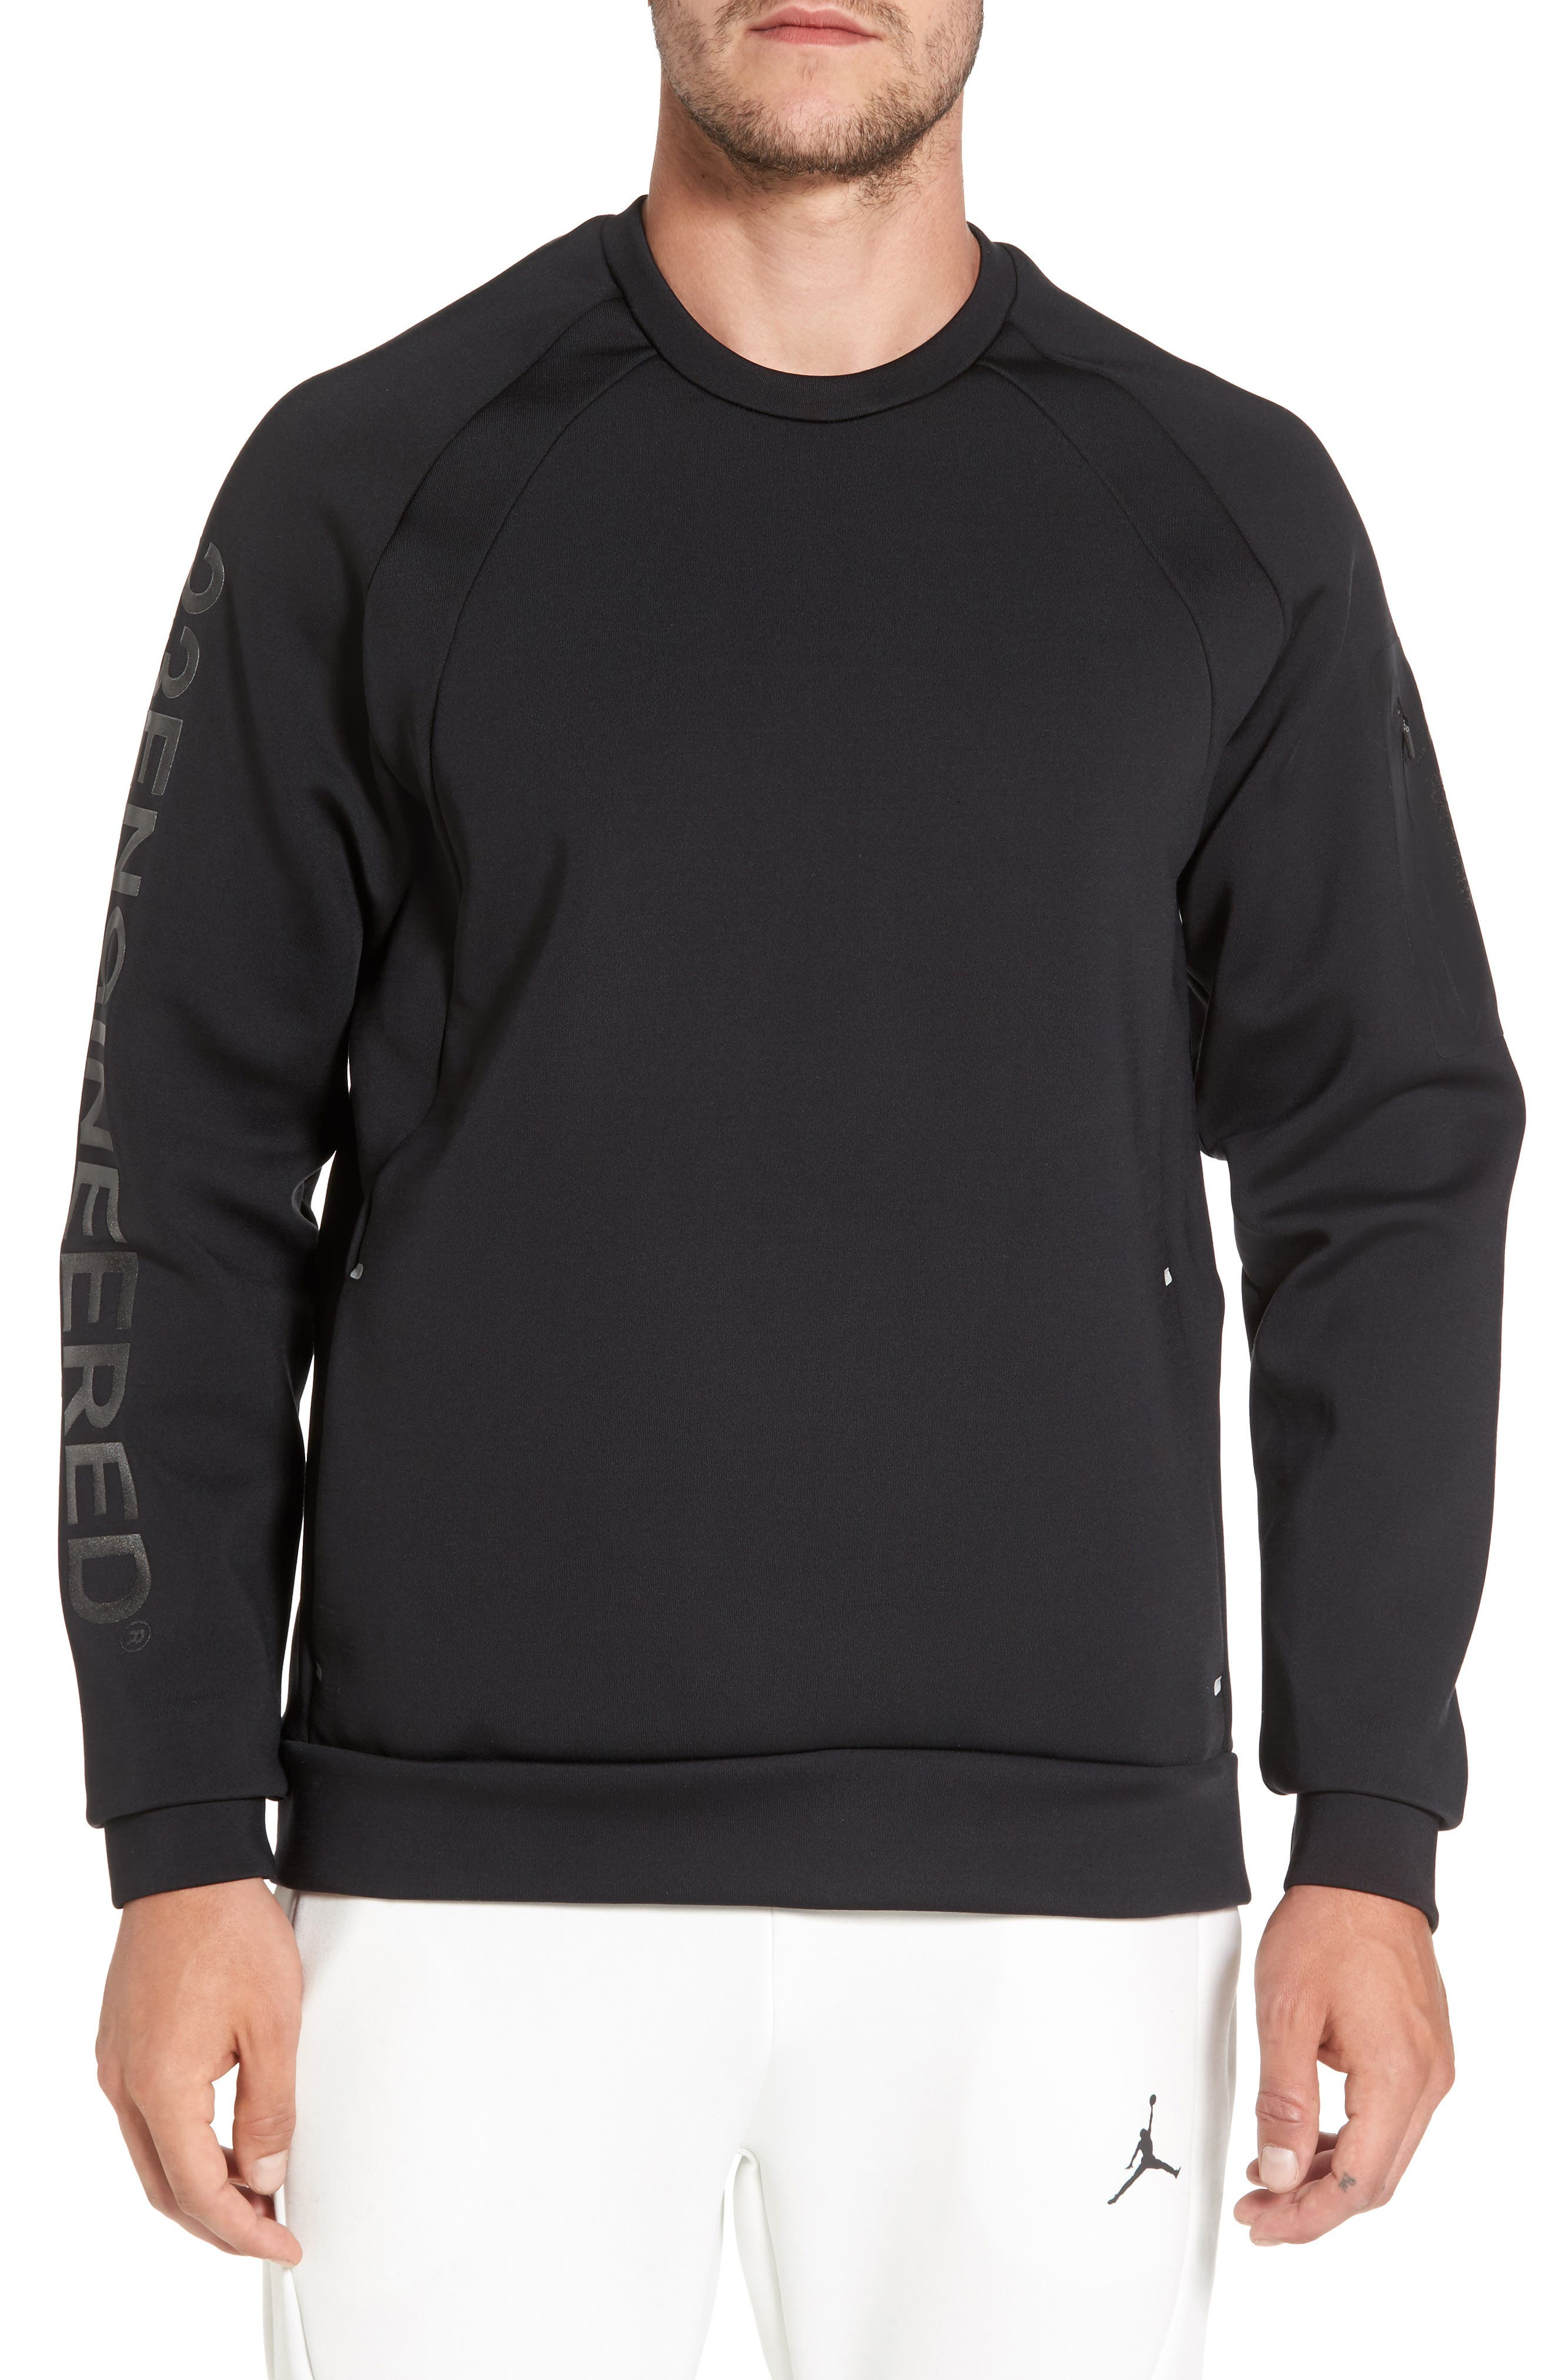 Sportswear Flight Tech Shield Crewneck,                         Main,                         color, 010